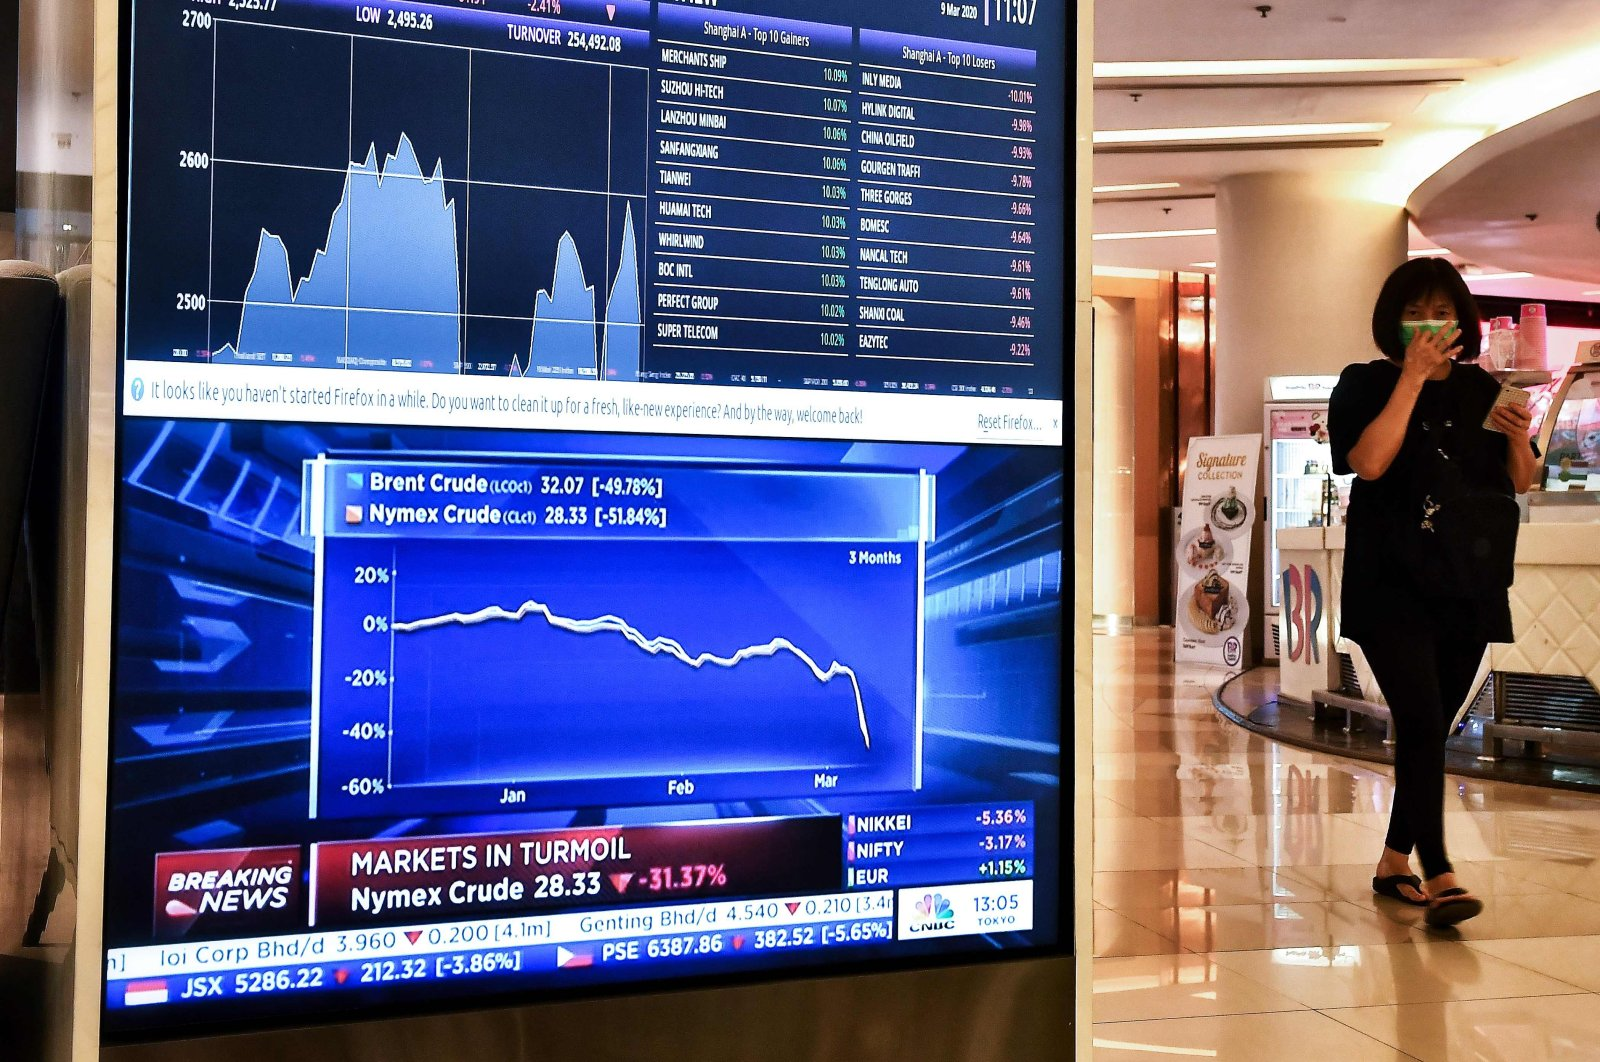 A woman wearing a face mask walks past an electronic board showing an overview of the Asian stock index and news report on the oil market at a shopping mall in Bangkok, March 9, 2020. (AFP Photo)